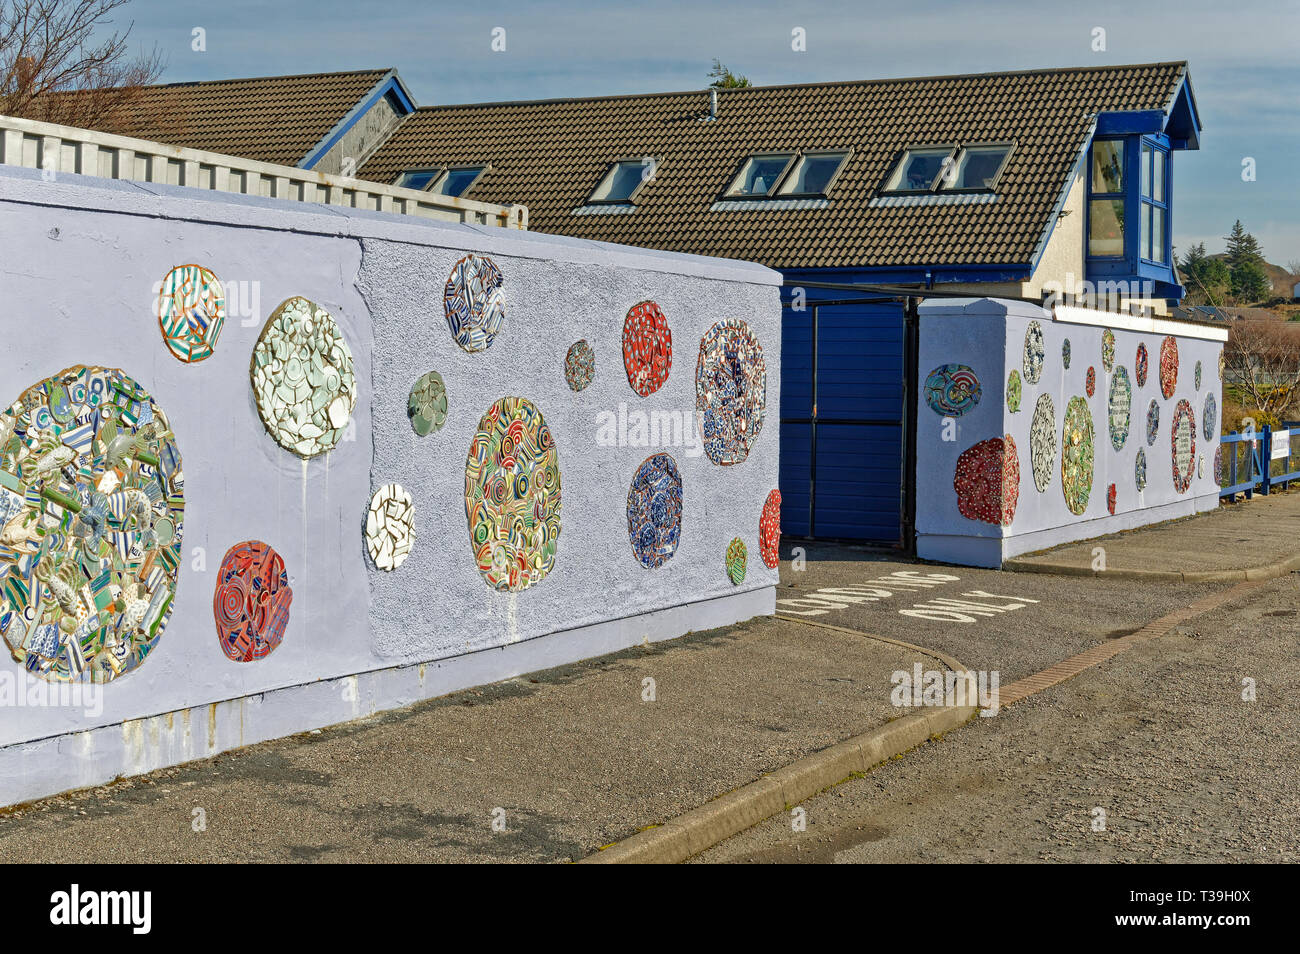 LOCHINVER SUTHERLAND SCOTLAND THE LOCHINVER HIGHLAND STONEWARE HOUSE OR STUDIO AND DECORATED WALLS - Stock Image